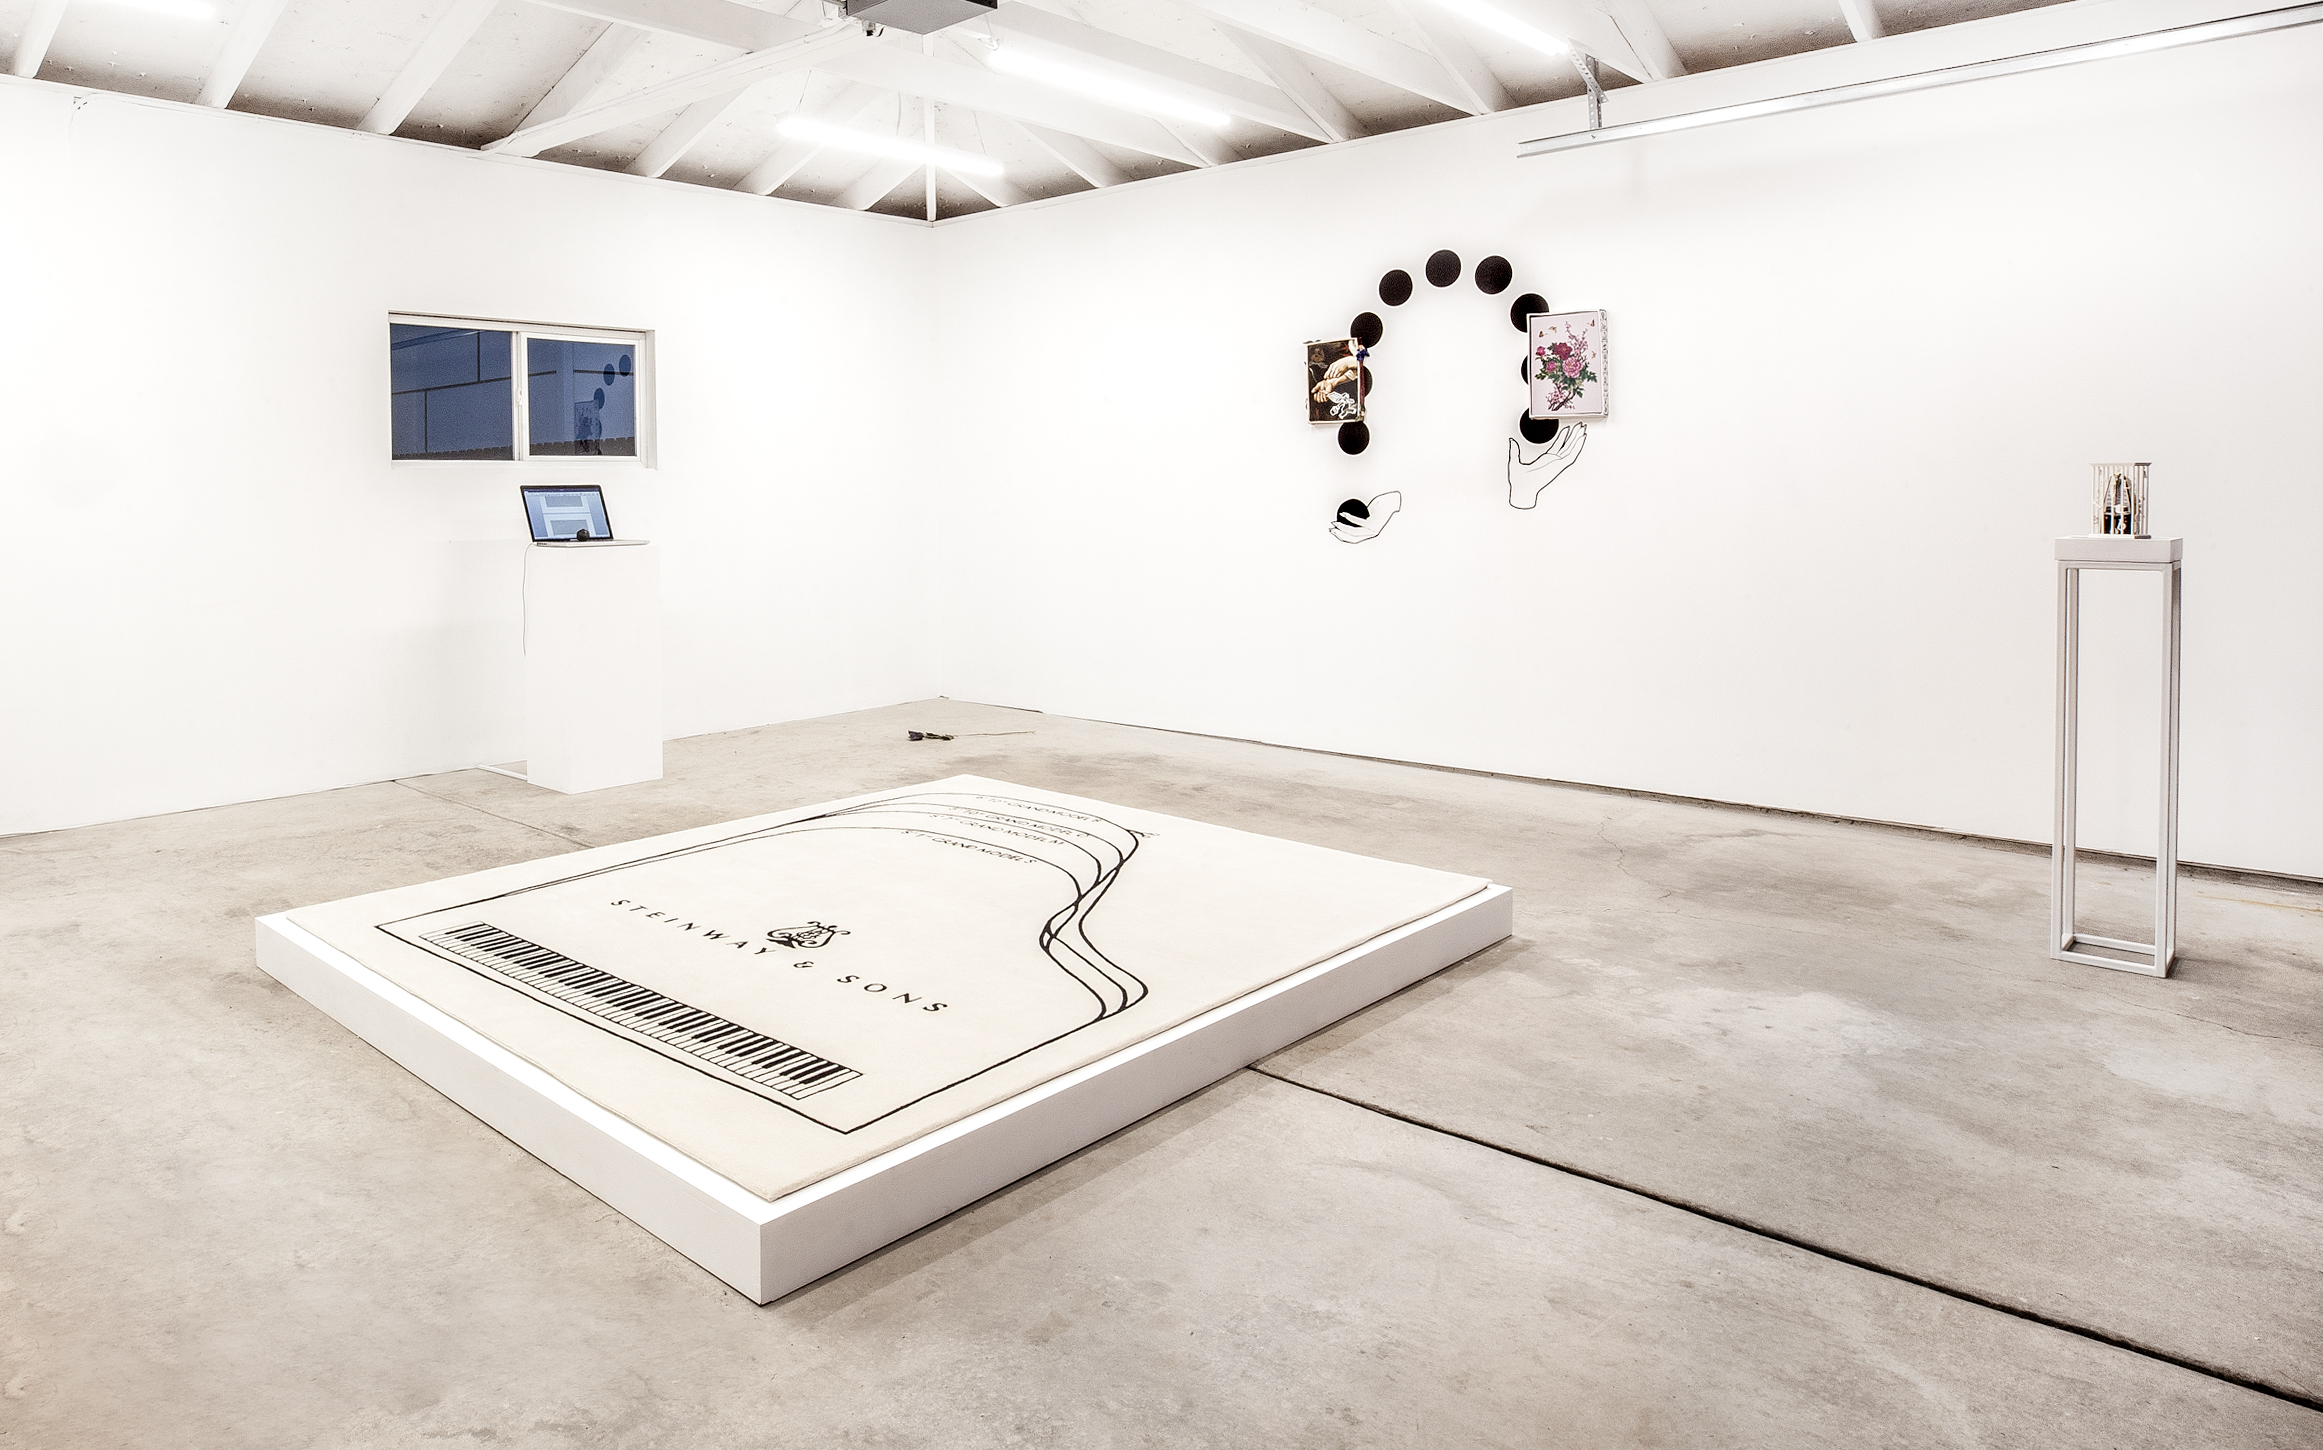 Note G , curated by Stephanie Cristello and Nathaniel Hitchcock, installation view, 2018. Photo: Daniel Hojnacki.